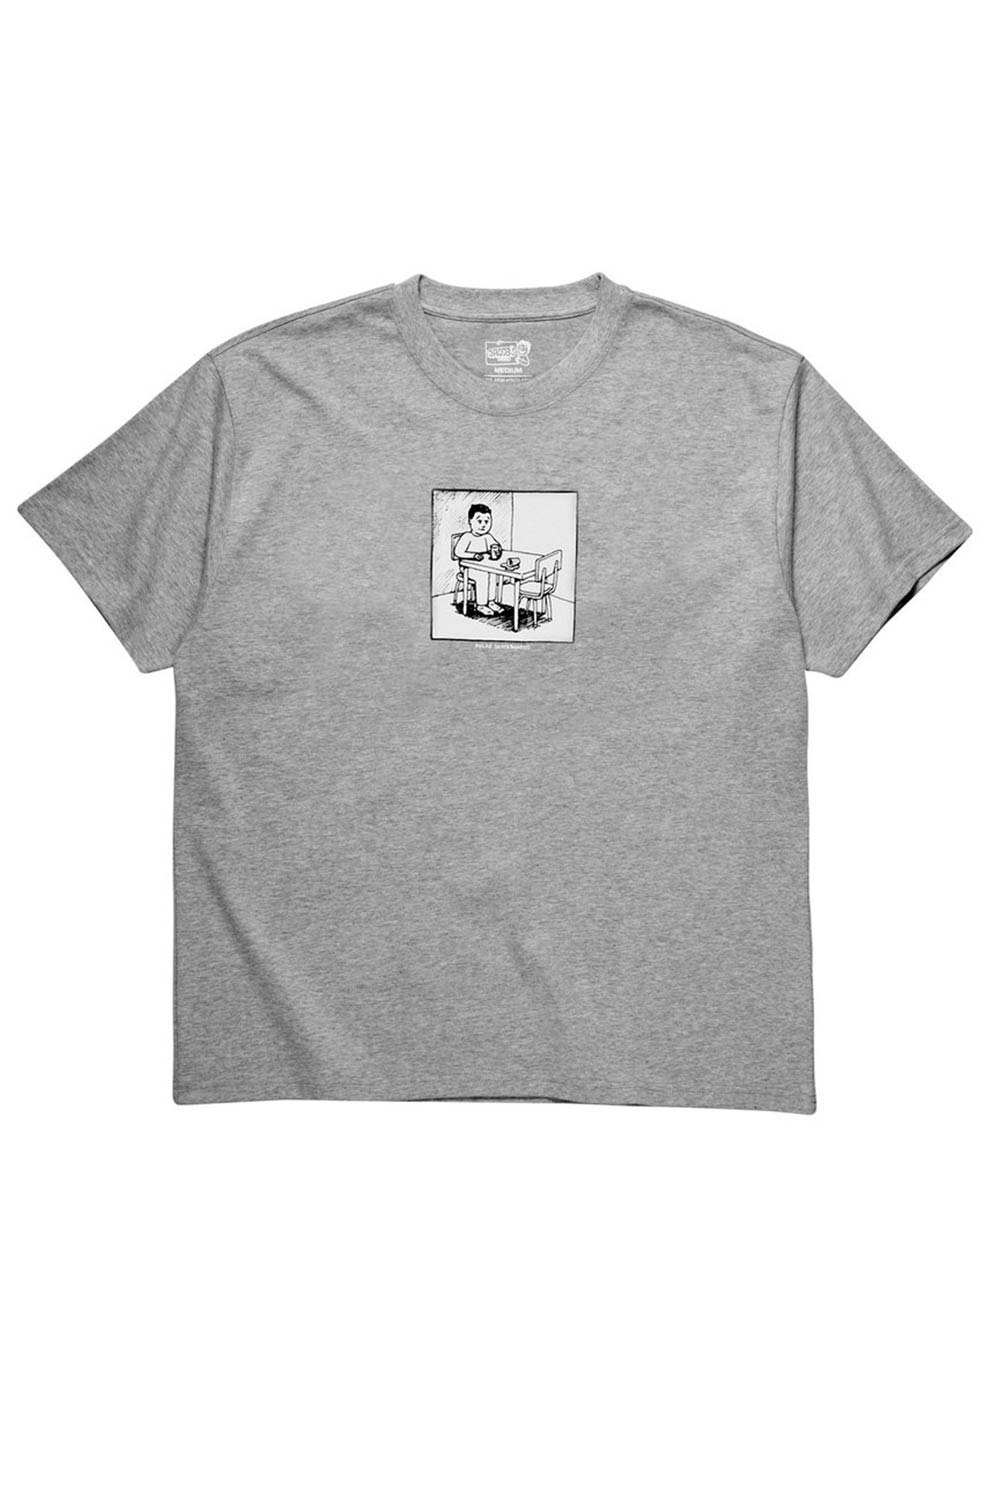 Polar Skate Co Spilled Milk Tee - Heather Grey | Shop Polar Skate Co Online